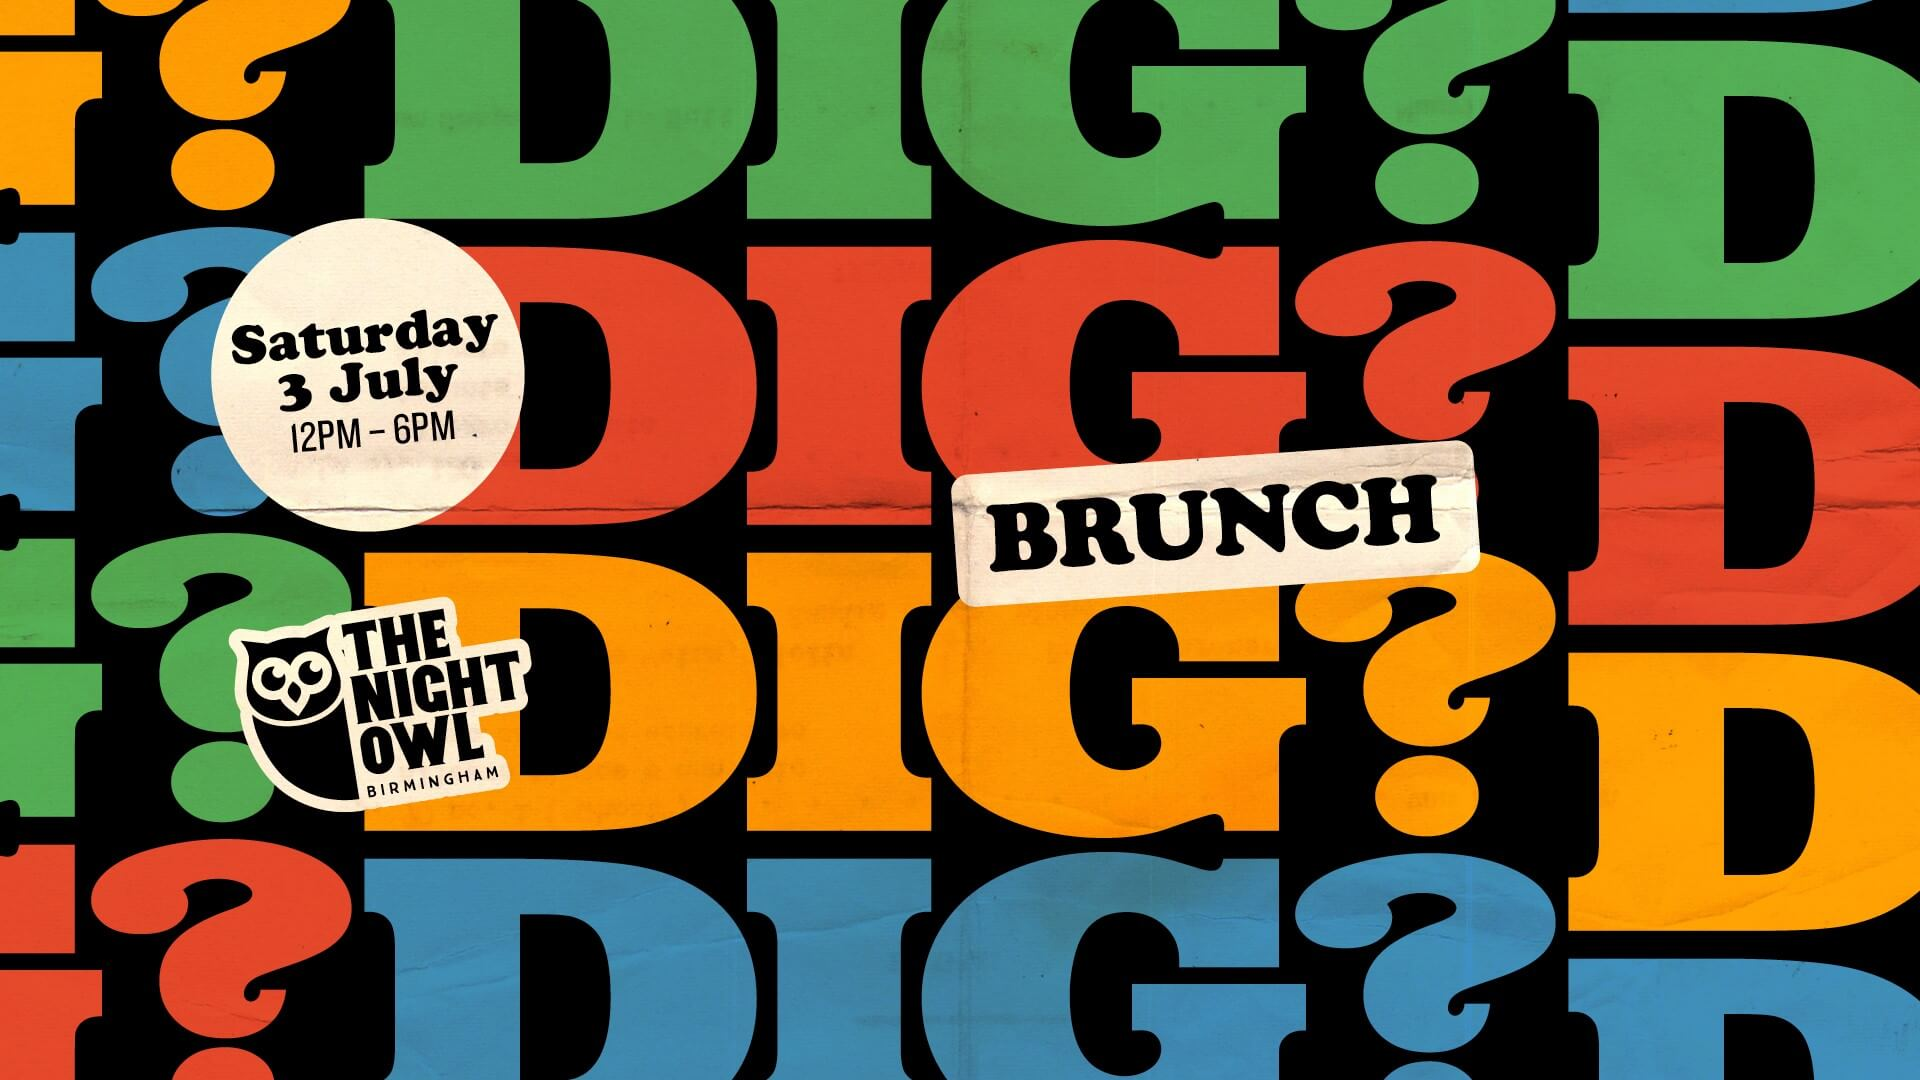 Dig? Brunch at The Night Owl Saturday 3rd July poster